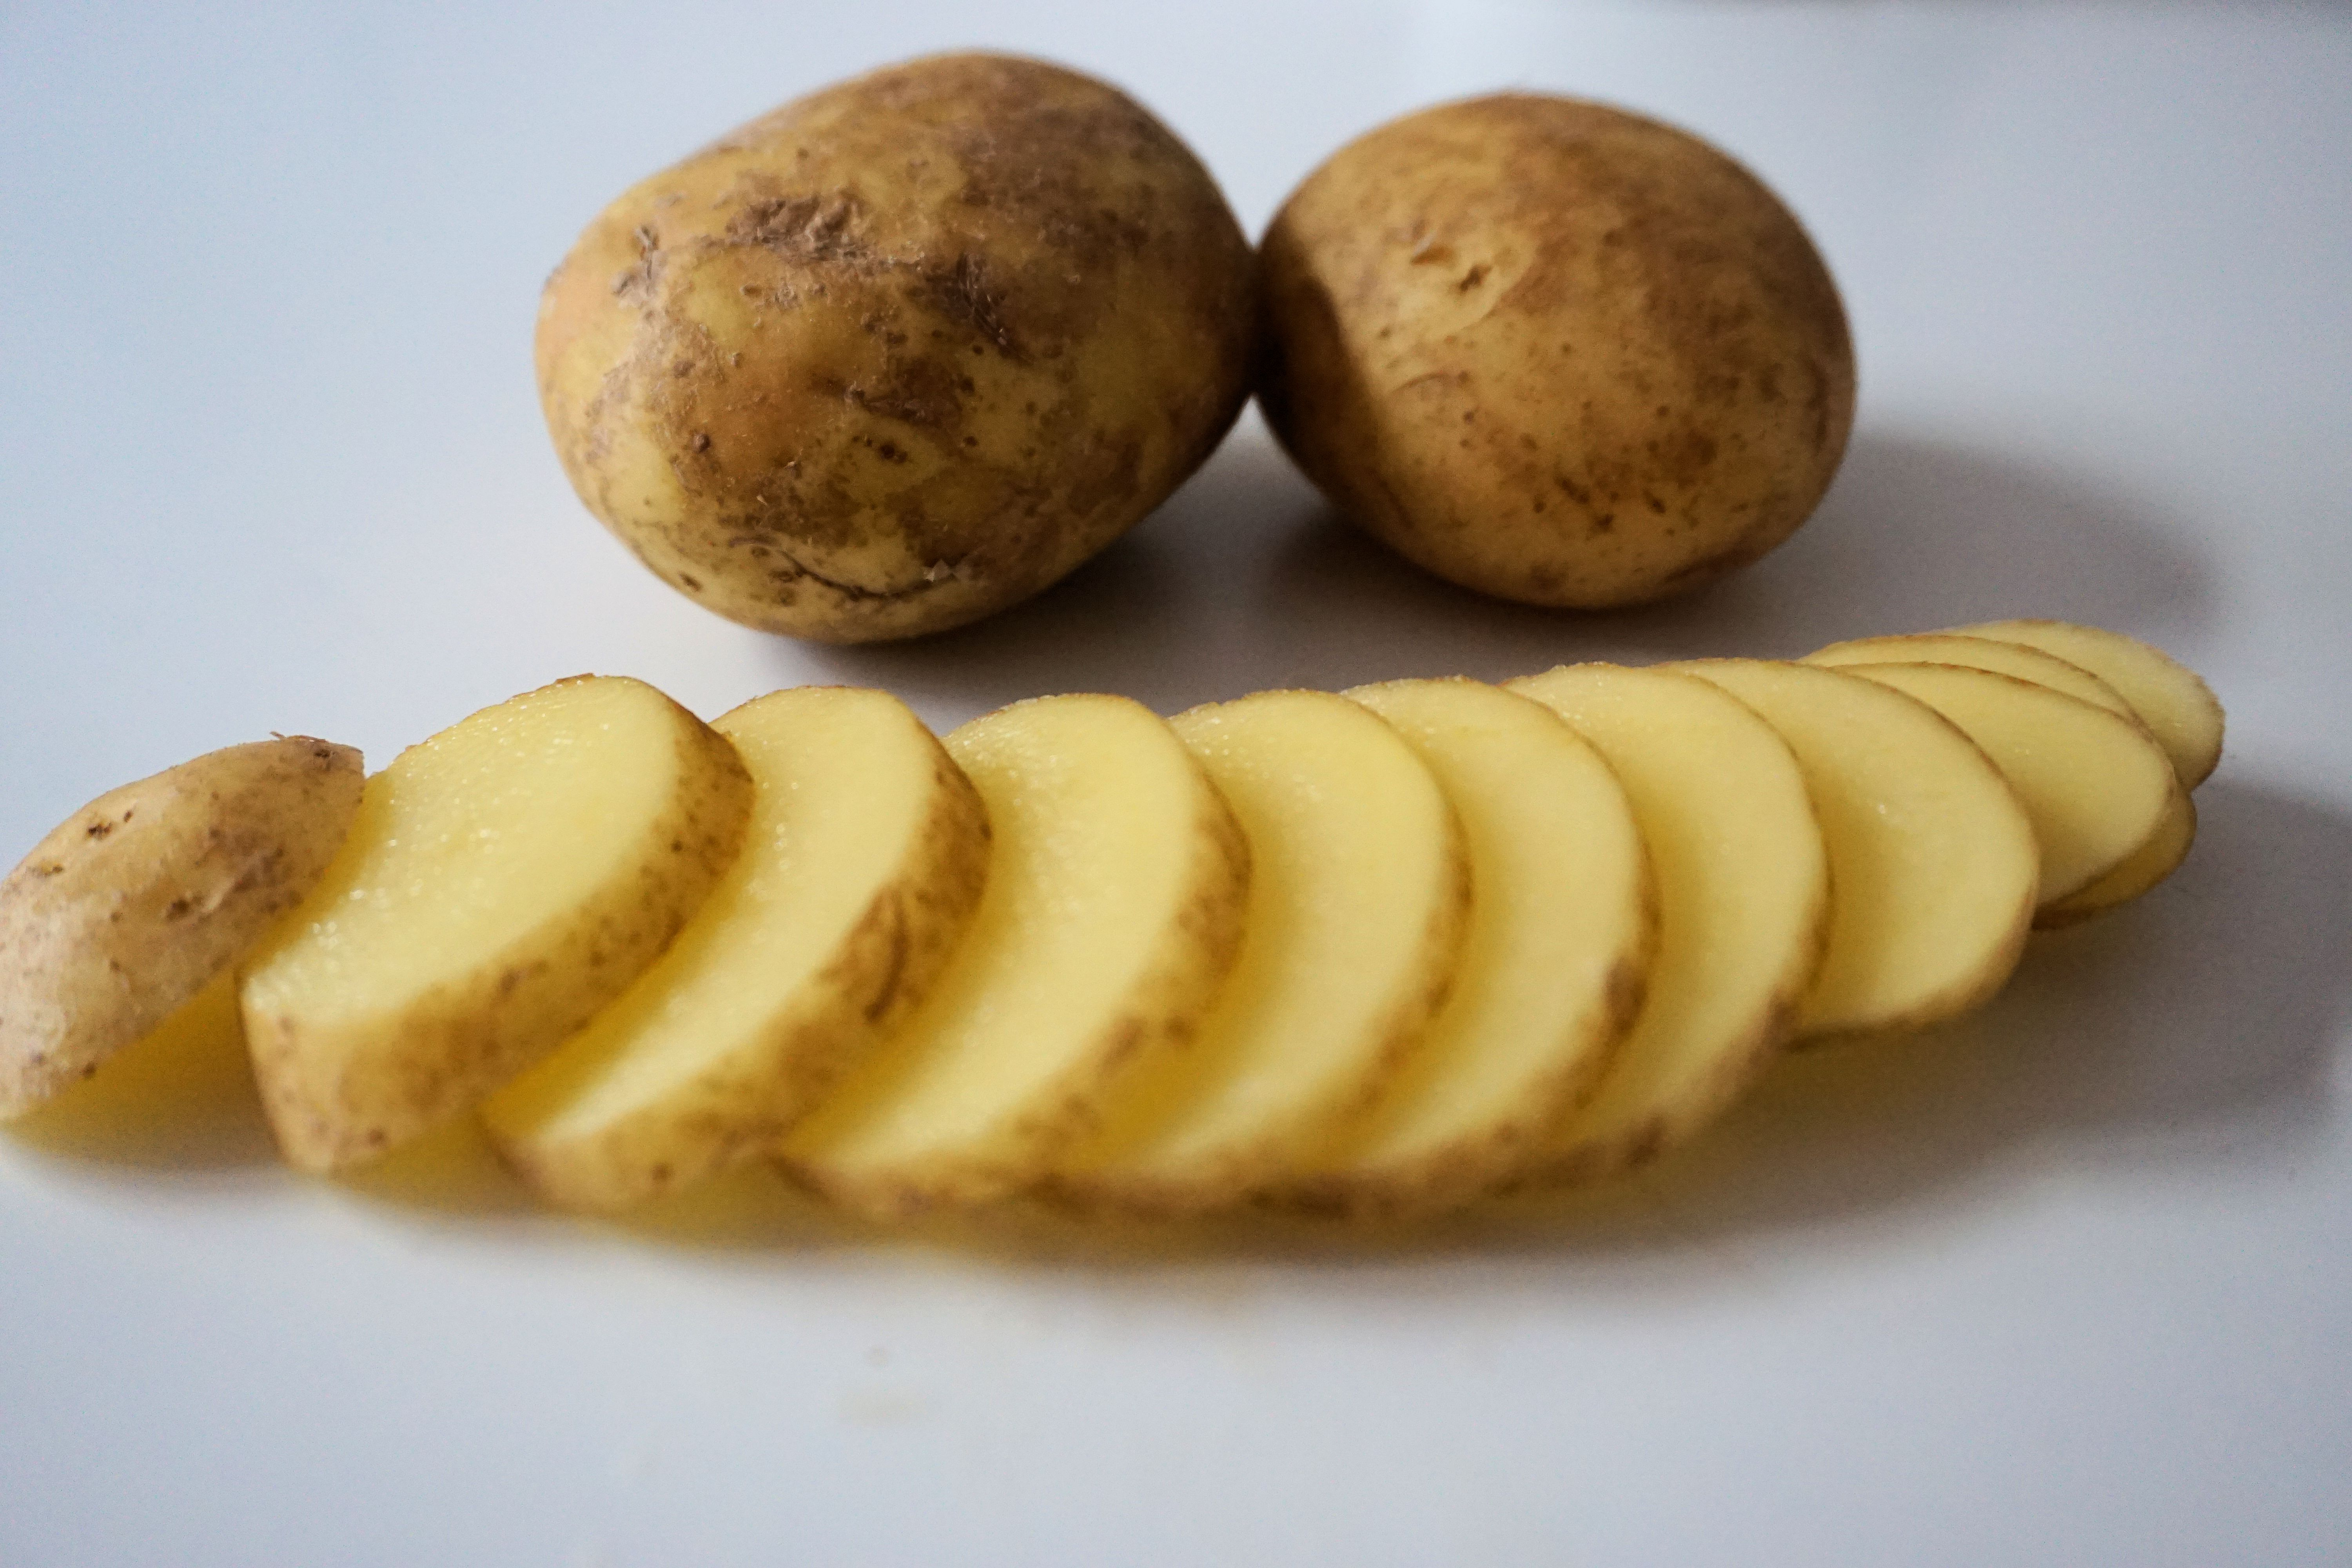 Potato Remedy for Swollen and Puffy Eyes